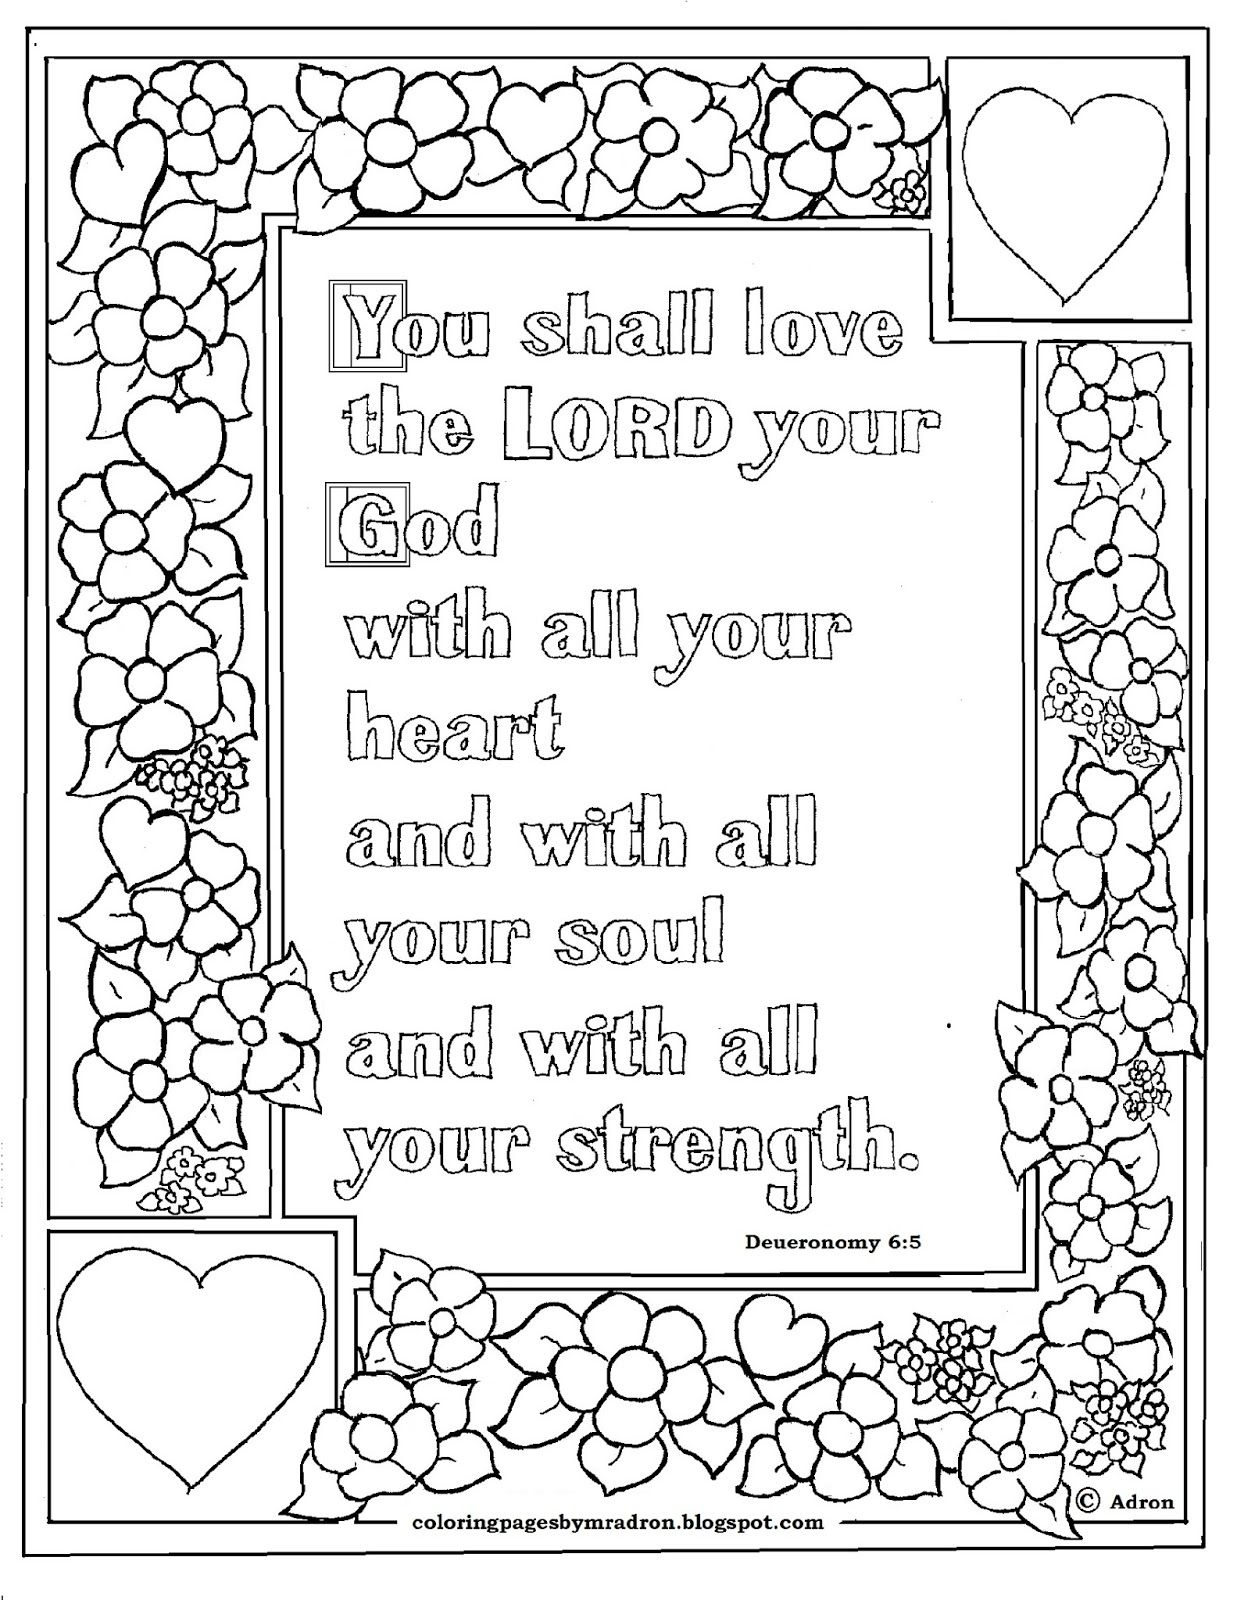 free bible verse coloring pages Download-Deuteronomy 6 5 Bible verse to print and color This is a free printable Bible verse coloring page it is perfect for children and adults t 5-e